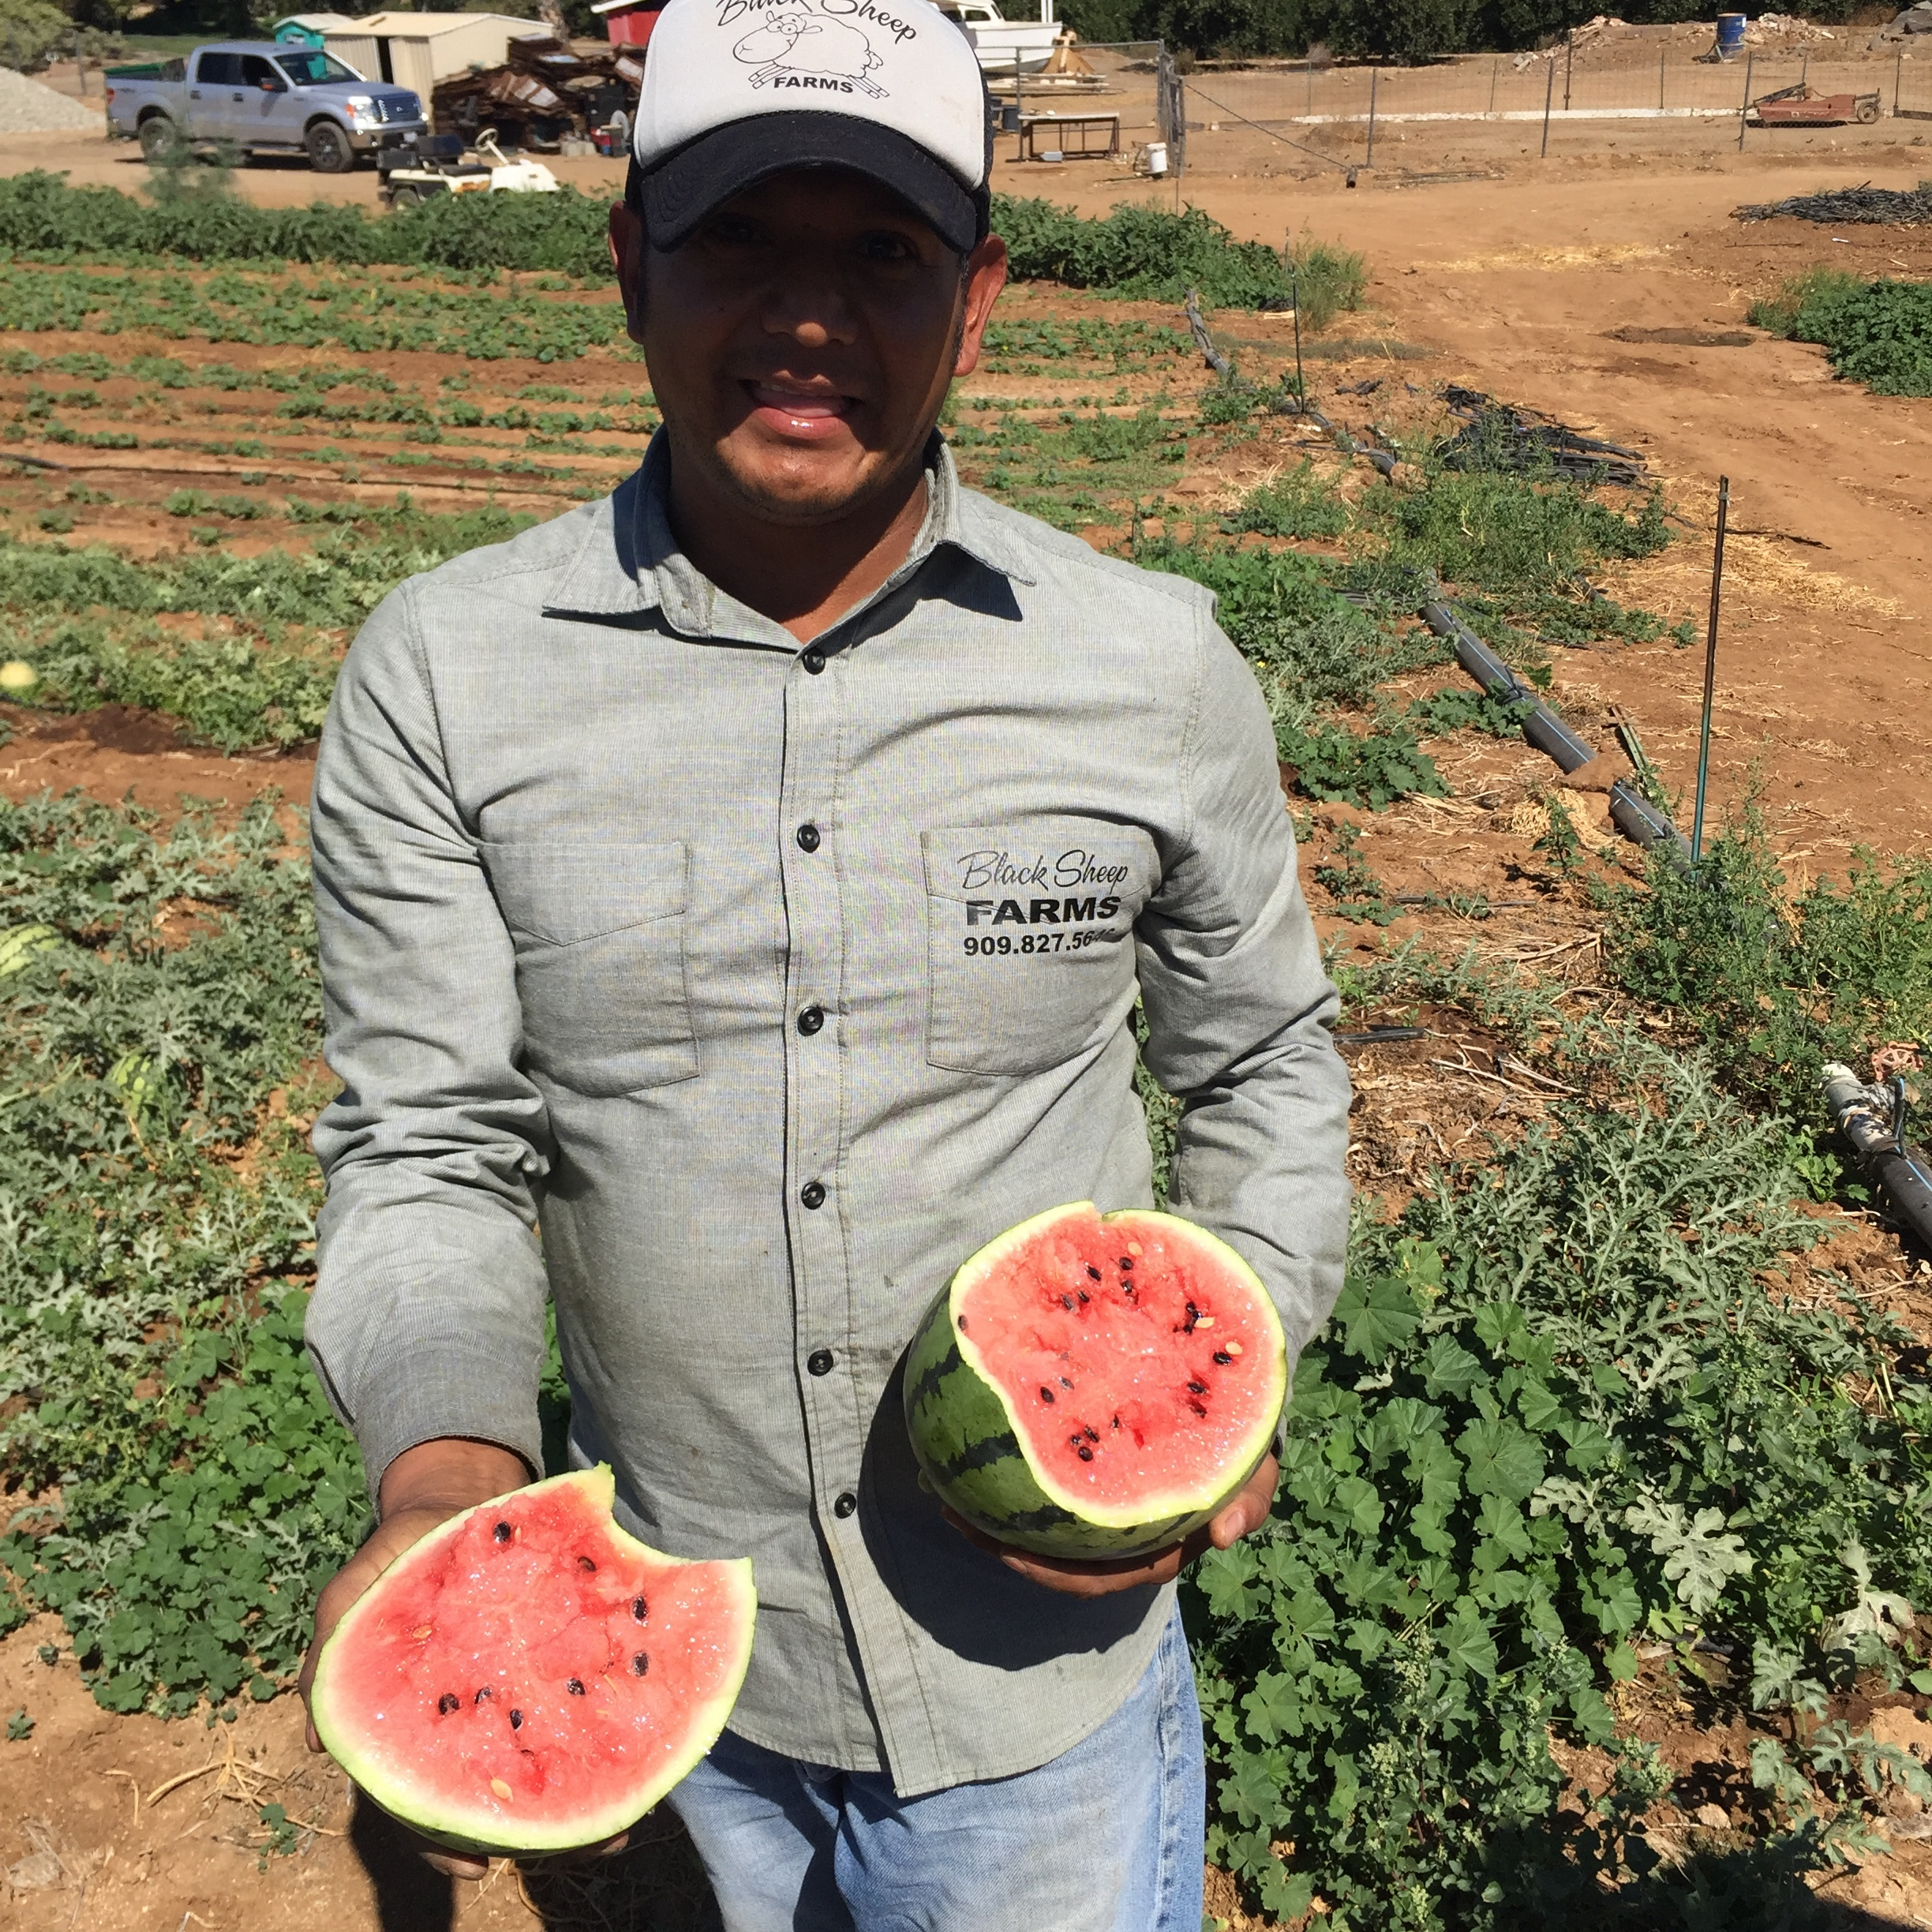 Tasting a freshly picked ripe watermelon from the vine. Very refreshing in the 95 degree heat.